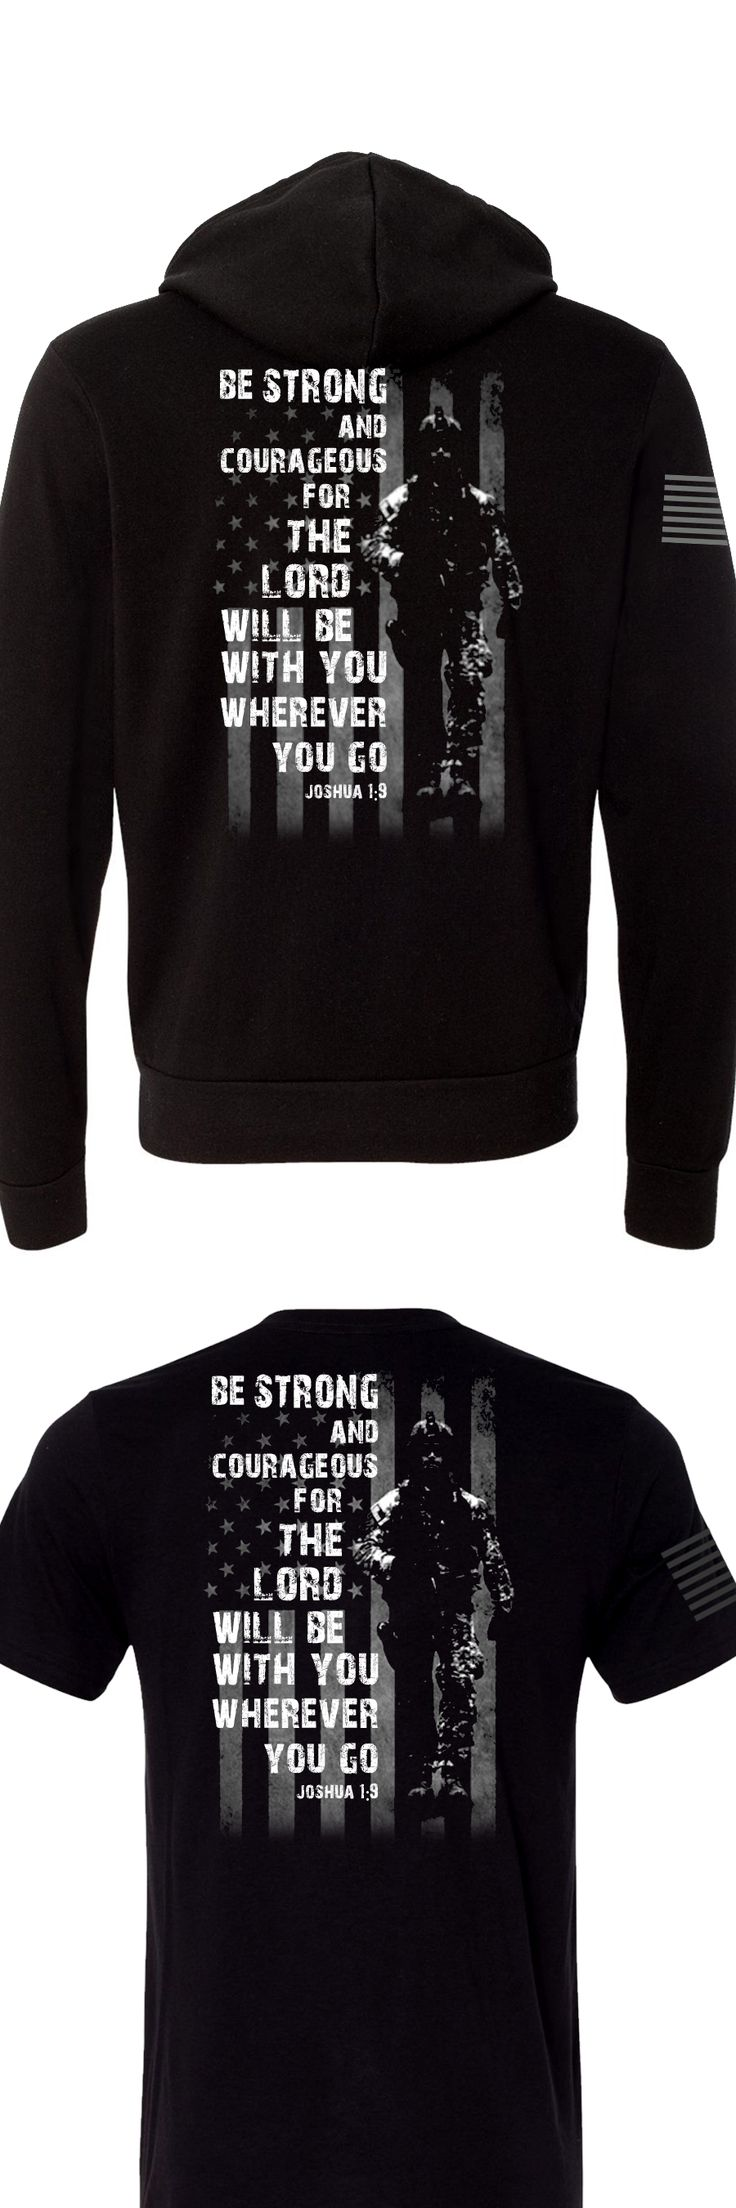 """""""Be Strong and Courageous for the Lord will be with you wherever you go."""" Joshua 1:9 - Your faith is what separates you from the rest. Let the Lord and this special T-shirt be with you wherever you go."""